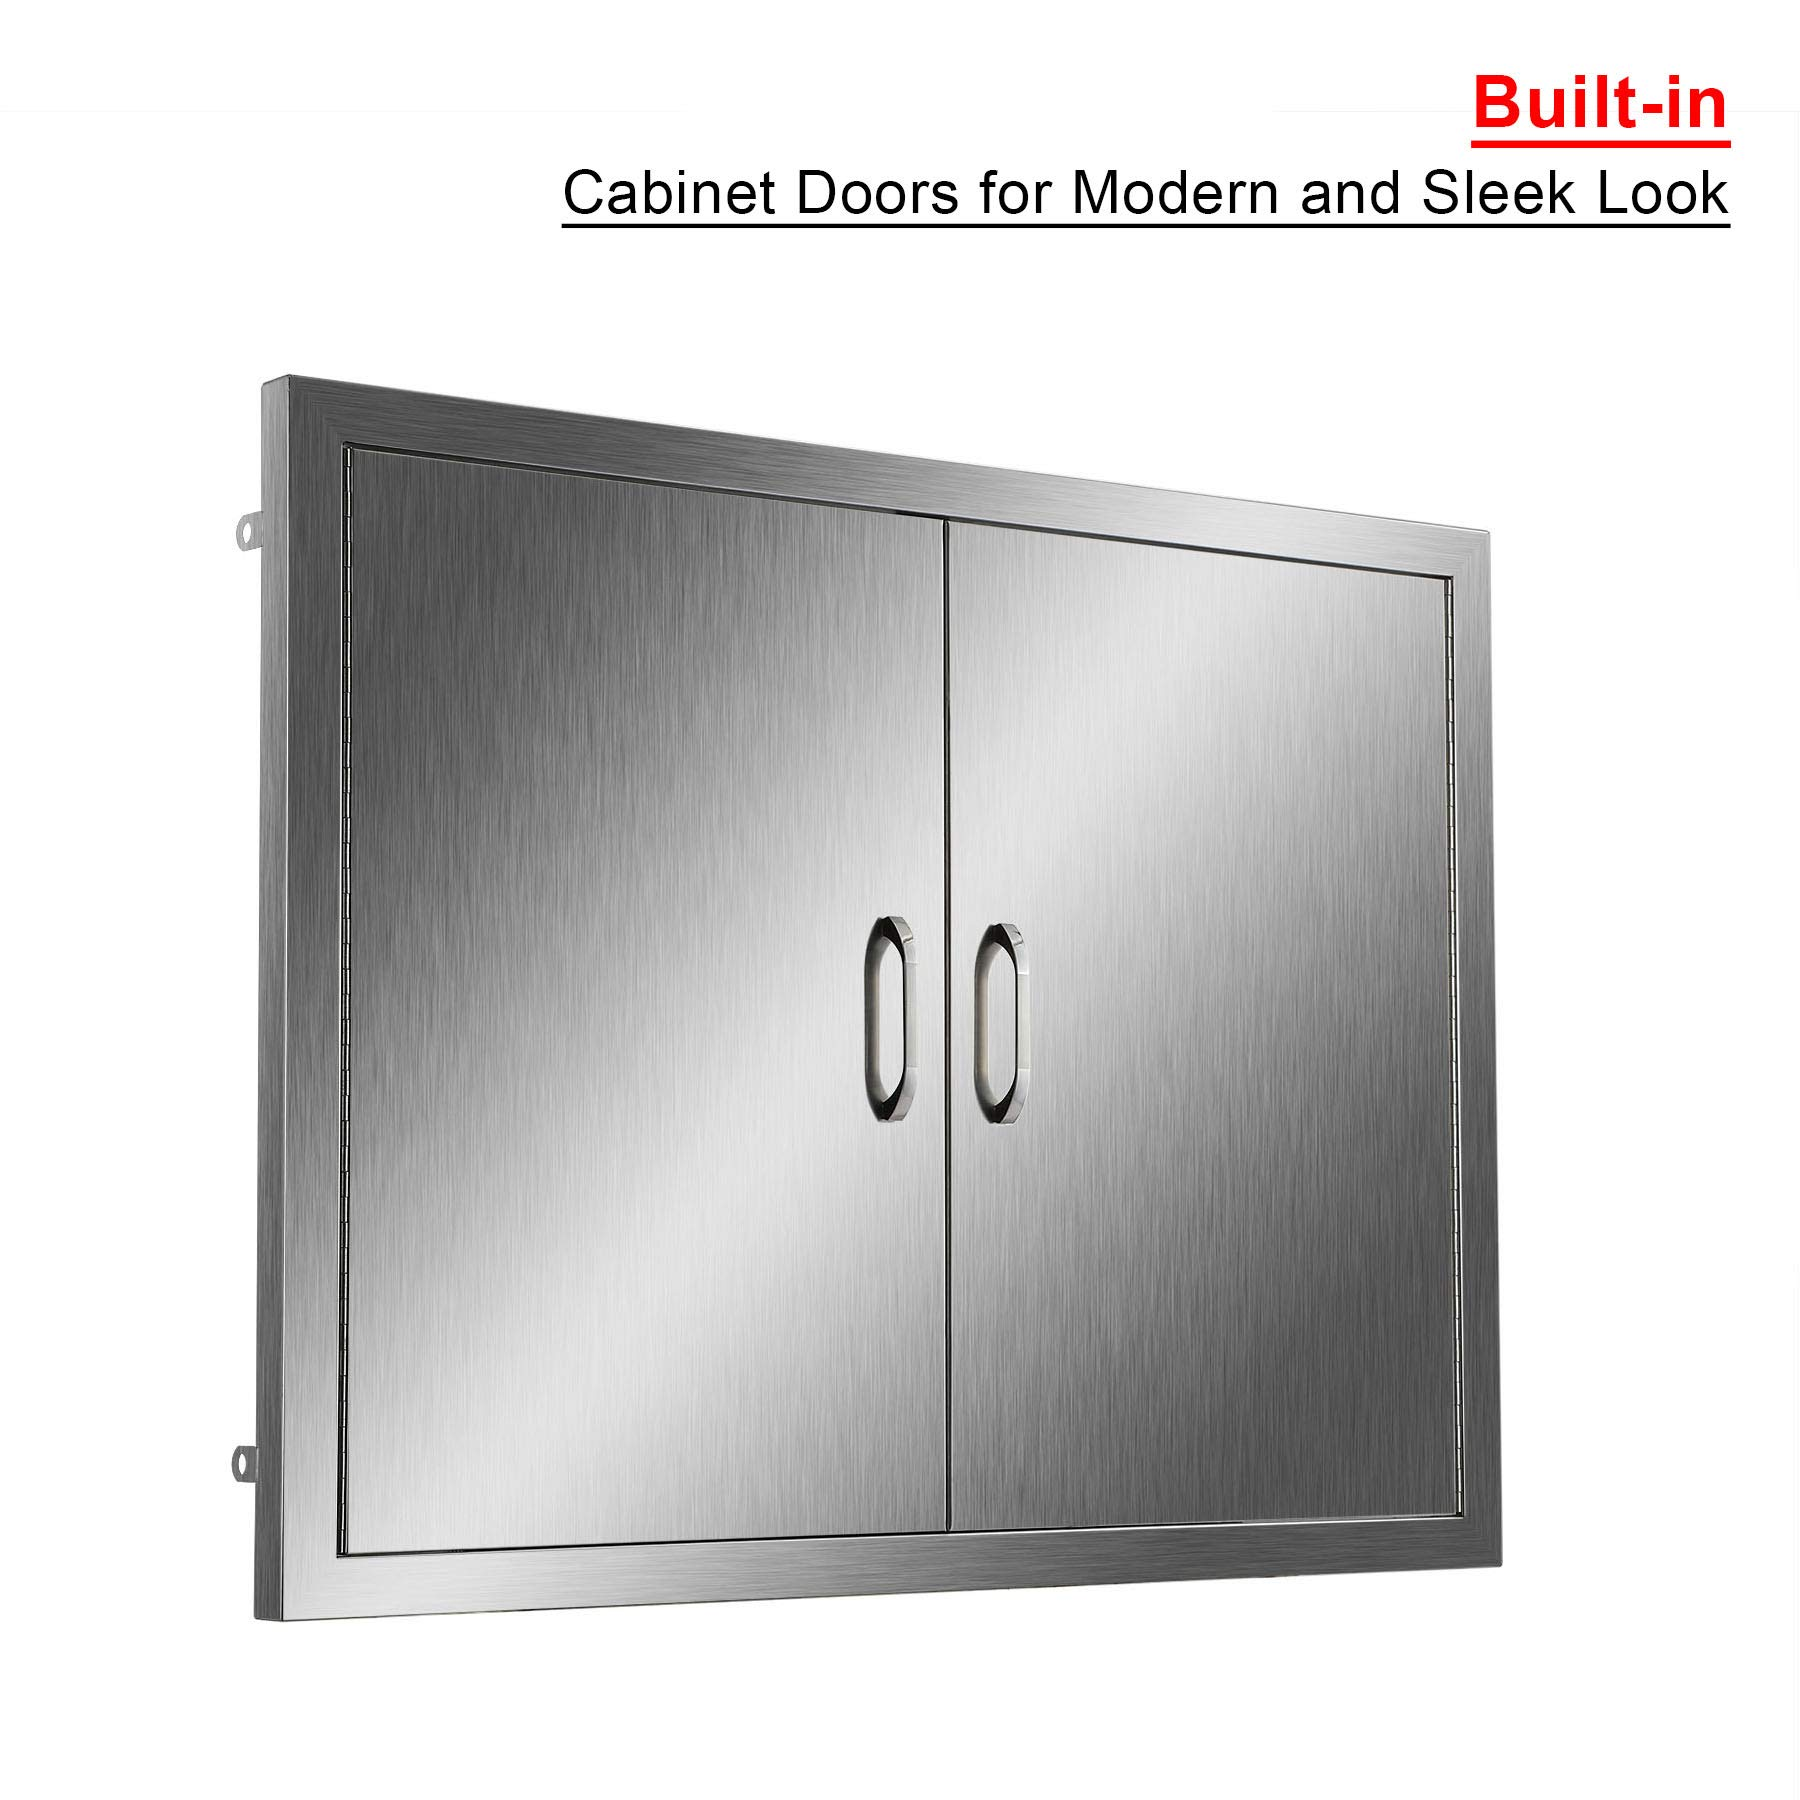 CO-Z Outdoor Kitchen Doors, 304 Brushed Stainless Steel Double BBQ Access Doors for Outdoor Kitchen, Commercial BBQ Island, Grilling Station, Outside Cabinet, Barbeque Grill, Built-in (31'' W x 24'' H) by CO-Z (Image #3)